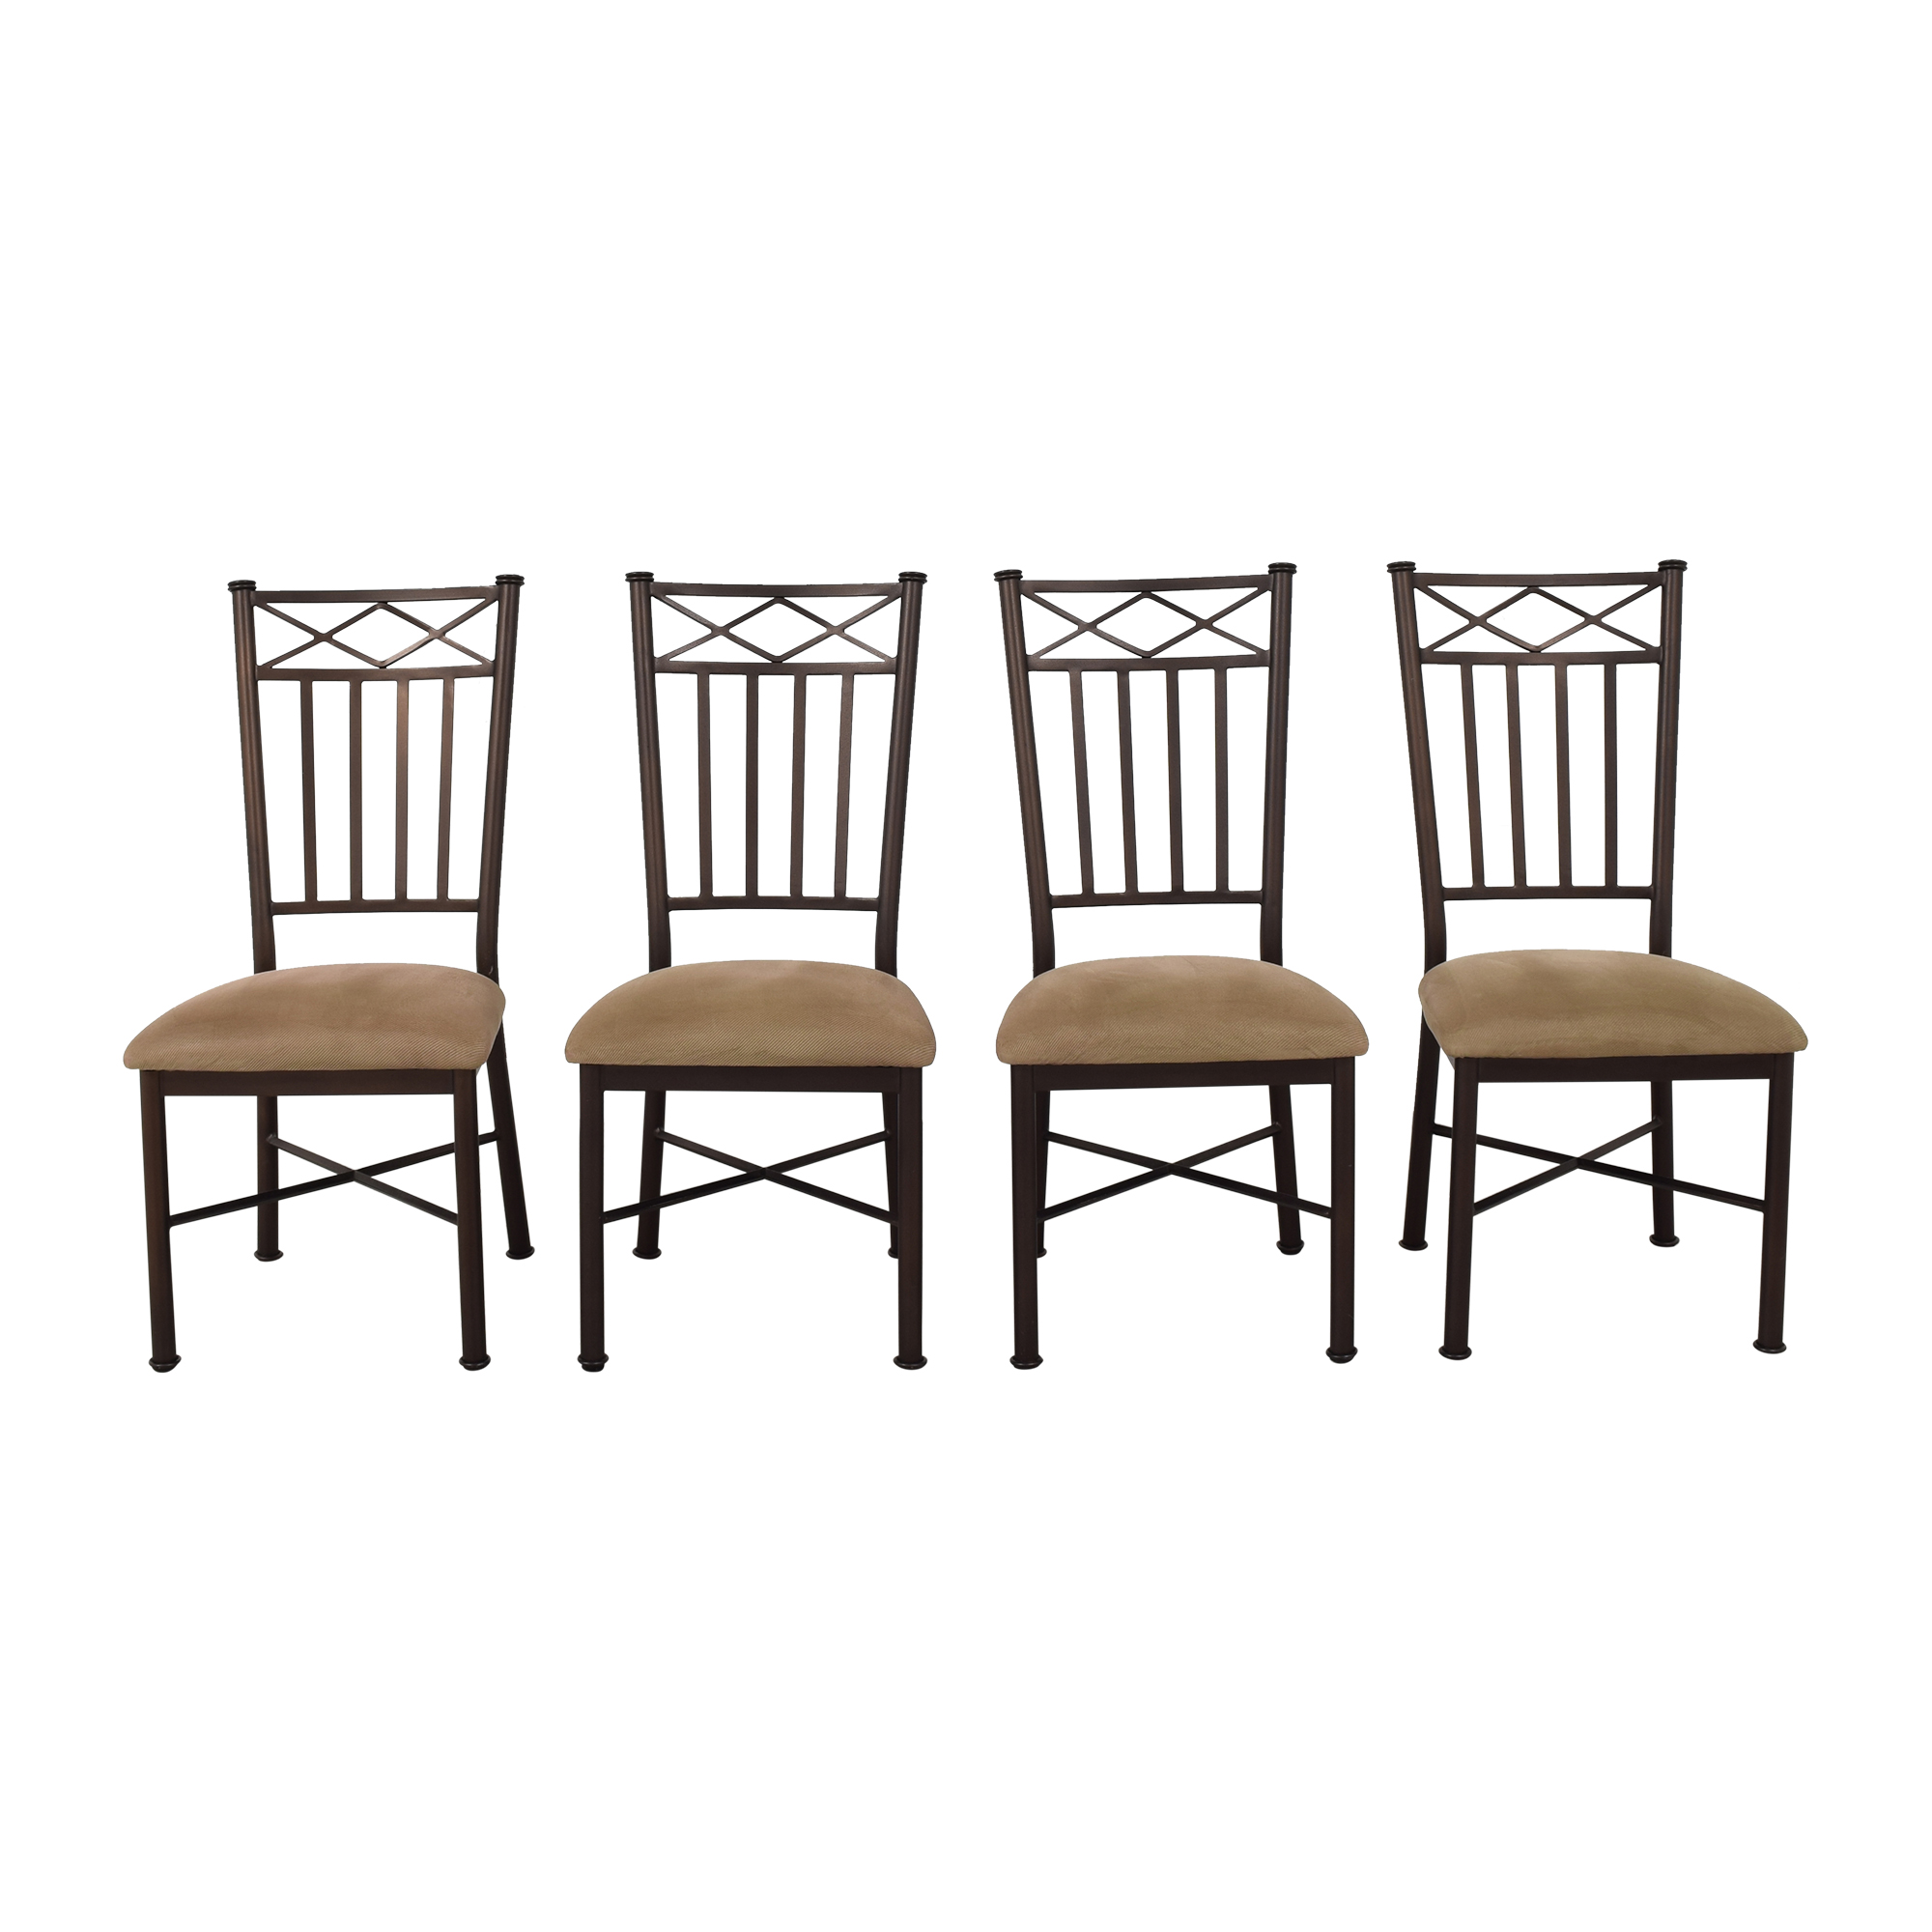 Tempo Furniture Tempo Furniture Arlington Dining Chairs used